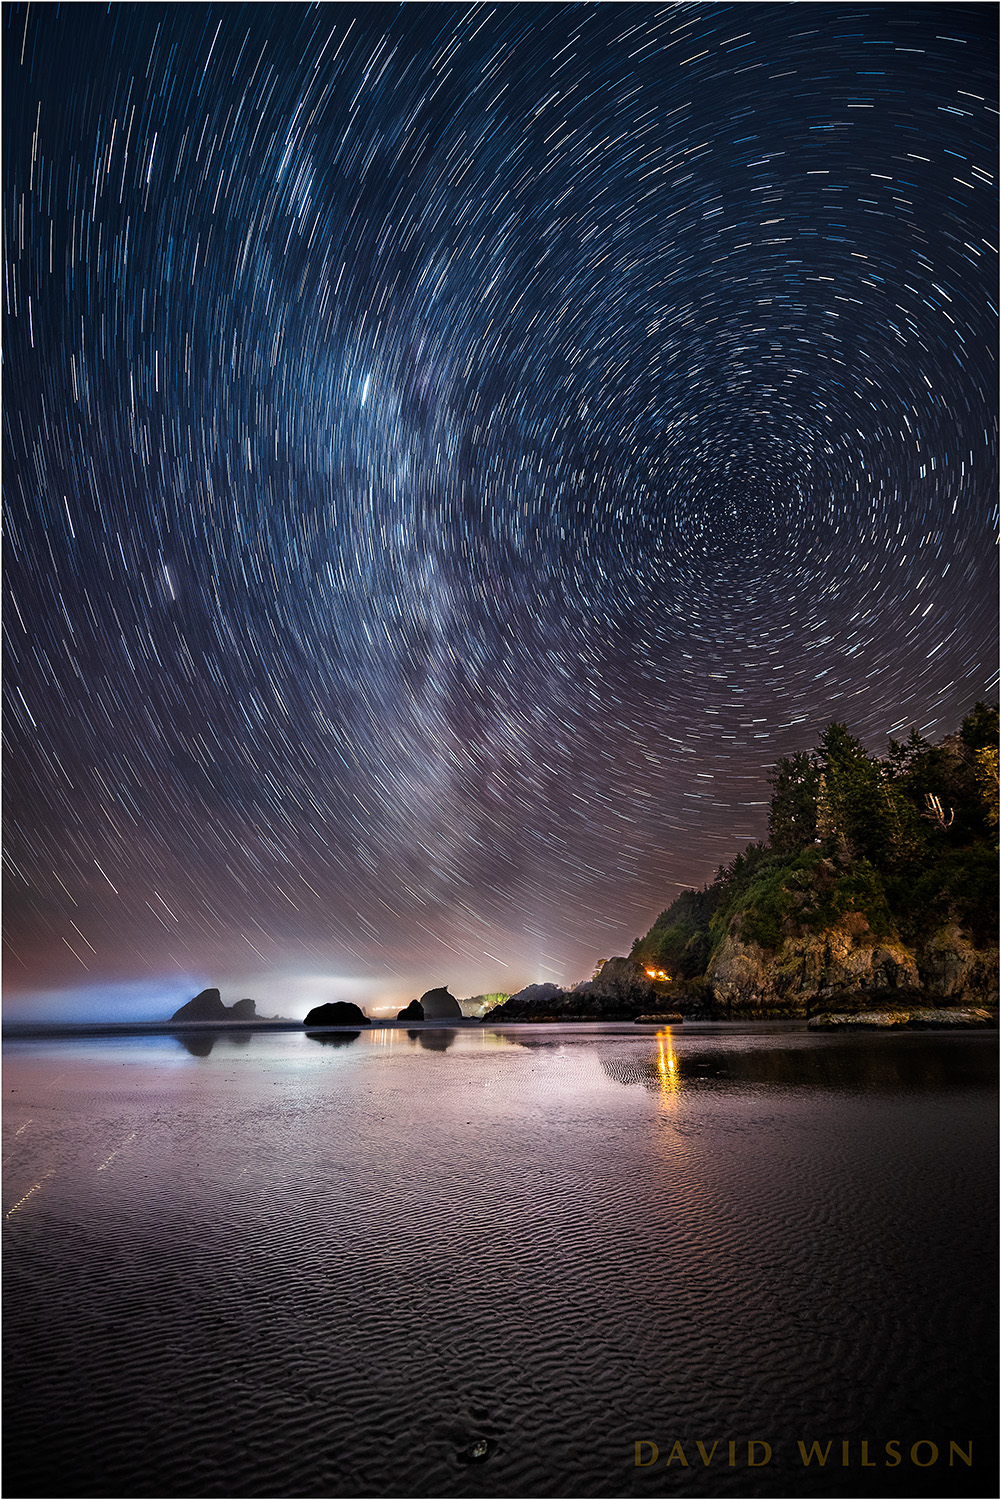 The stars wheel about the north star Polaris over Moonstone Beach, Humboldt County, California.